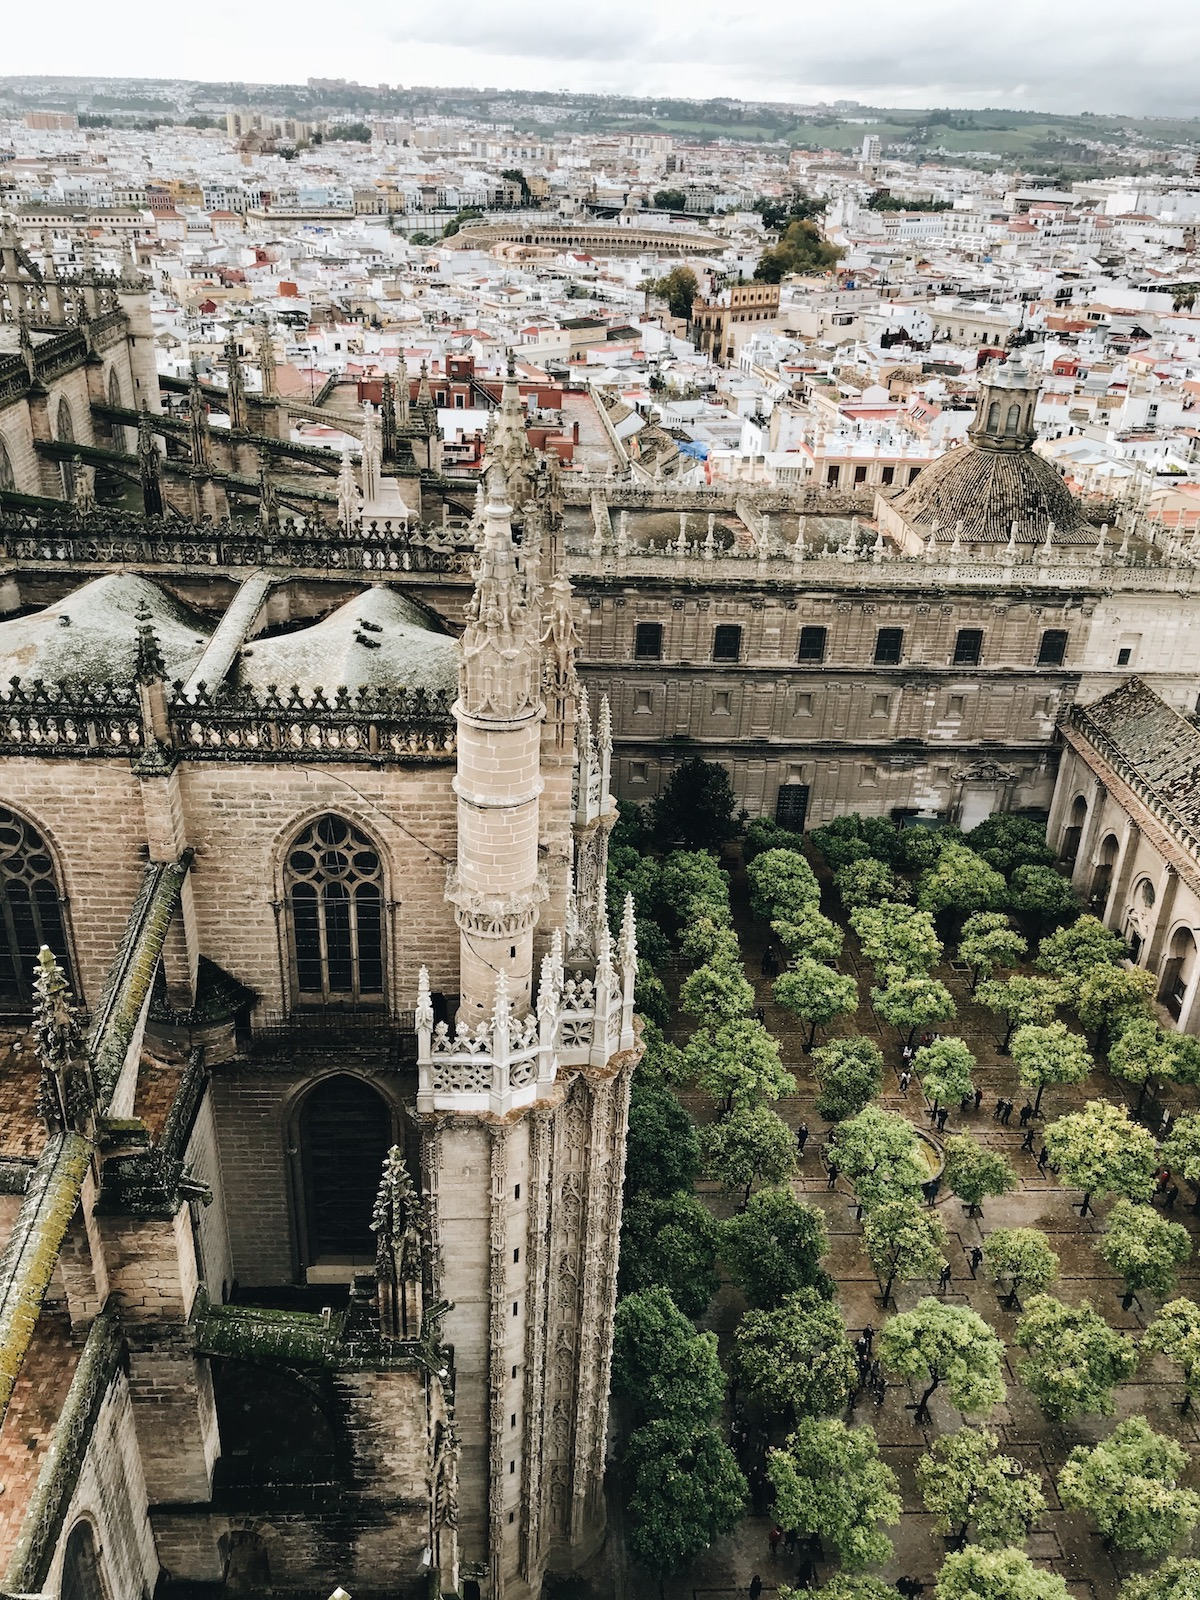 View from the top of La Giralda